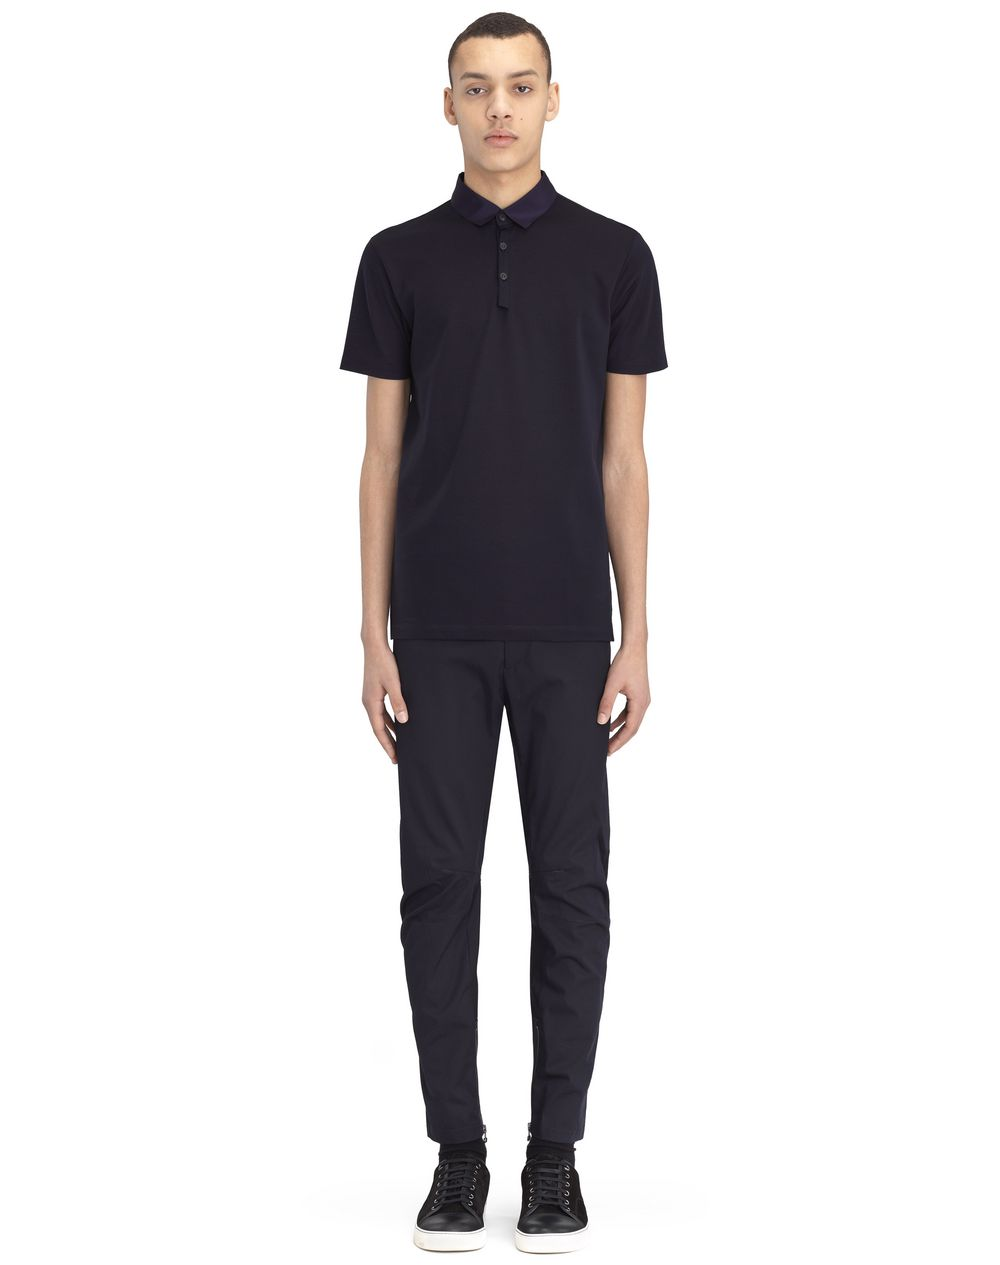 SLIM-FIT PIQUÉ POLO SHIRT - Lanvin